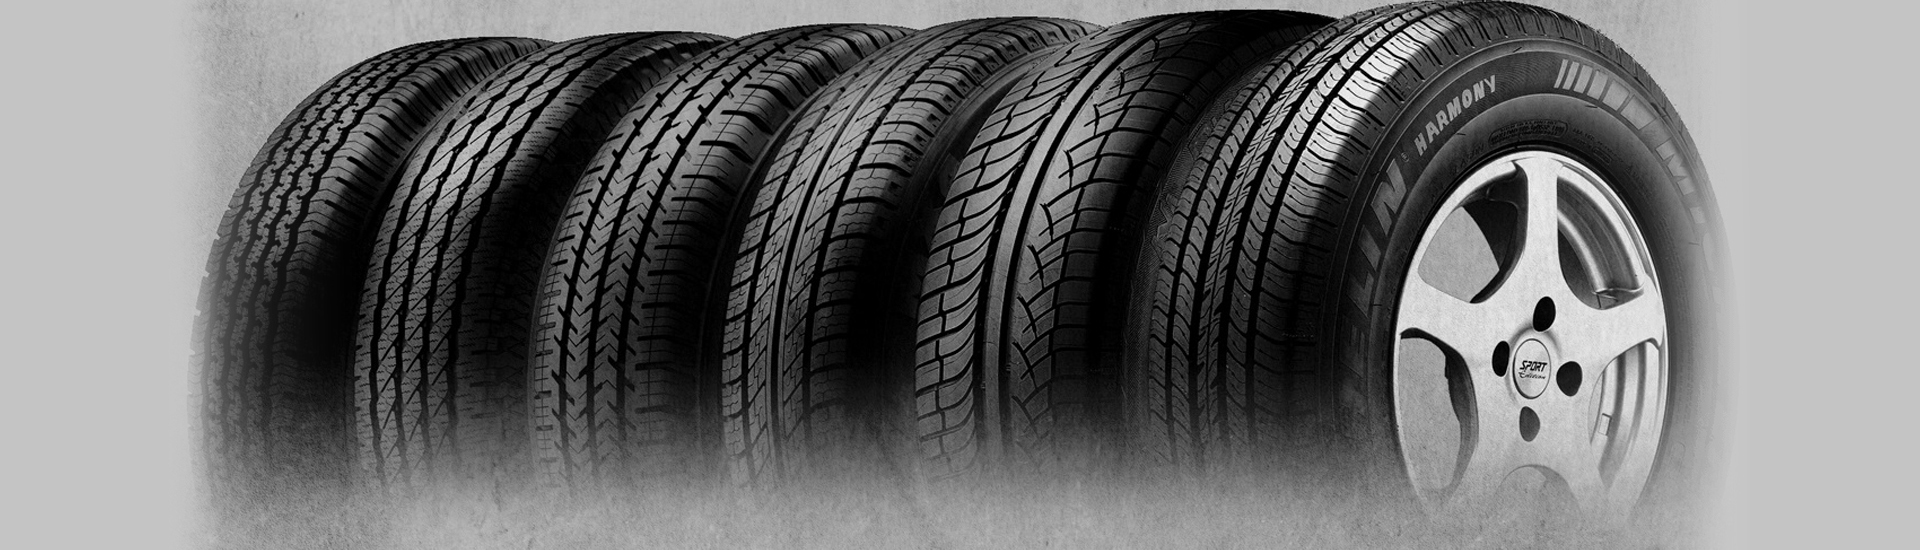 Tire Experts Salem Or Tires And Service Shop